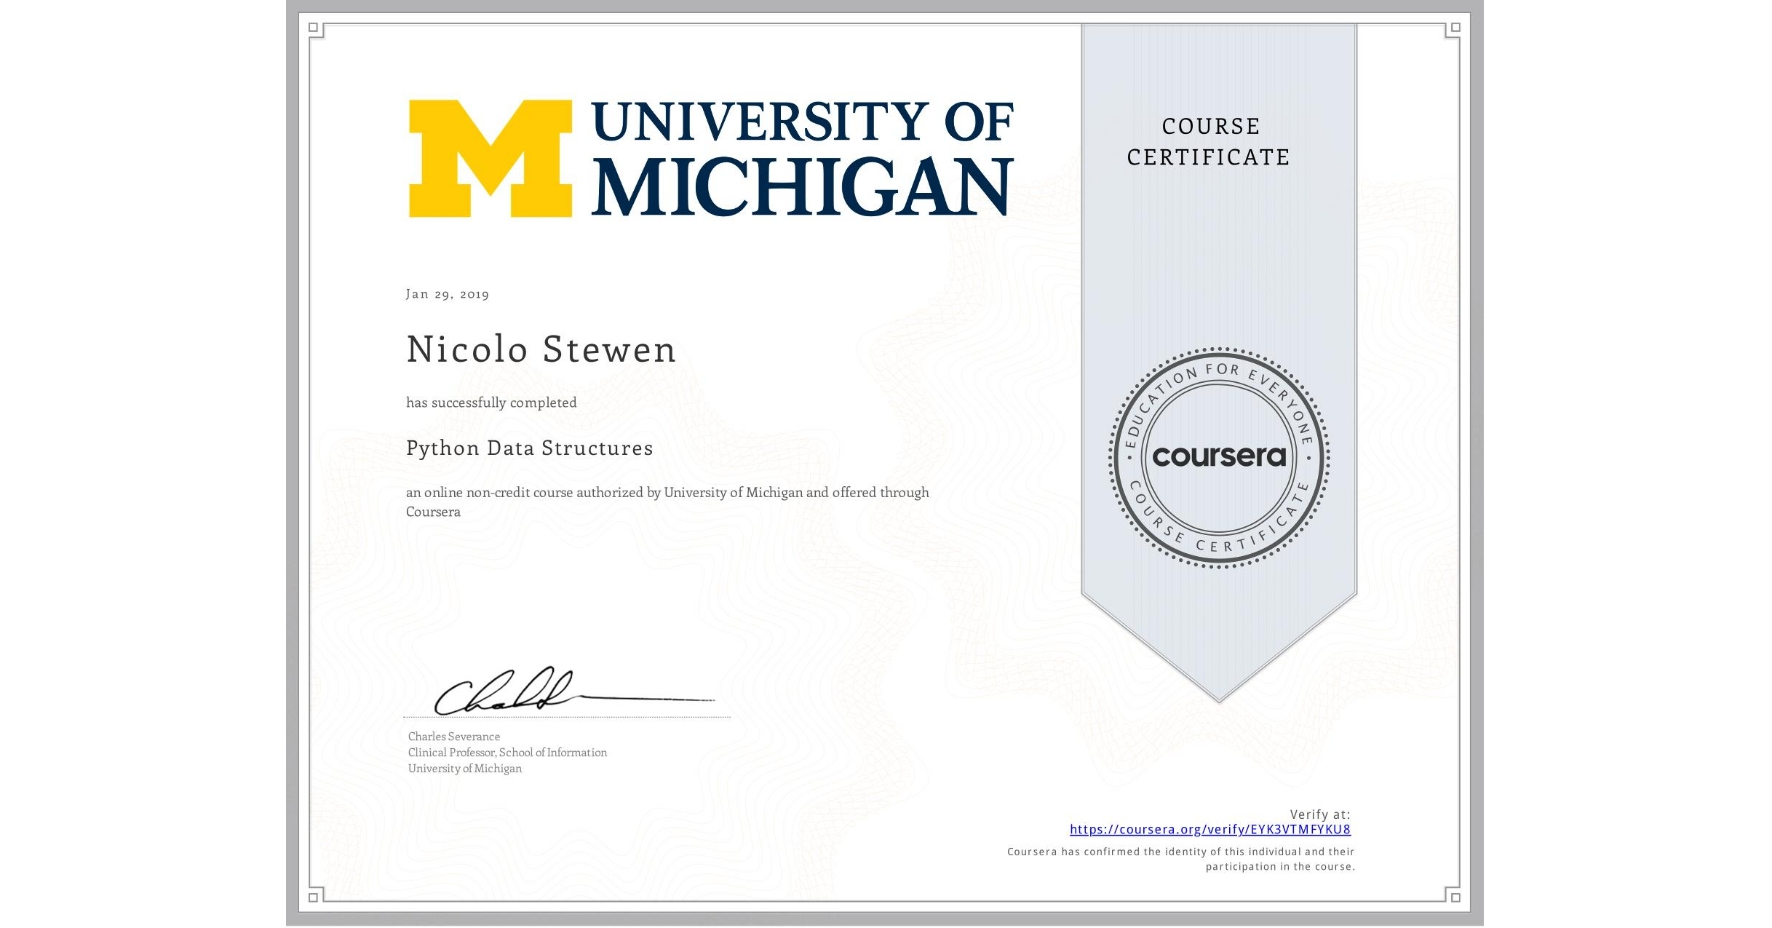 View certificate for Nicolo Stewen, Python Data Structures, an online non-credit course authorized by University of Michigan and offered through Coursera